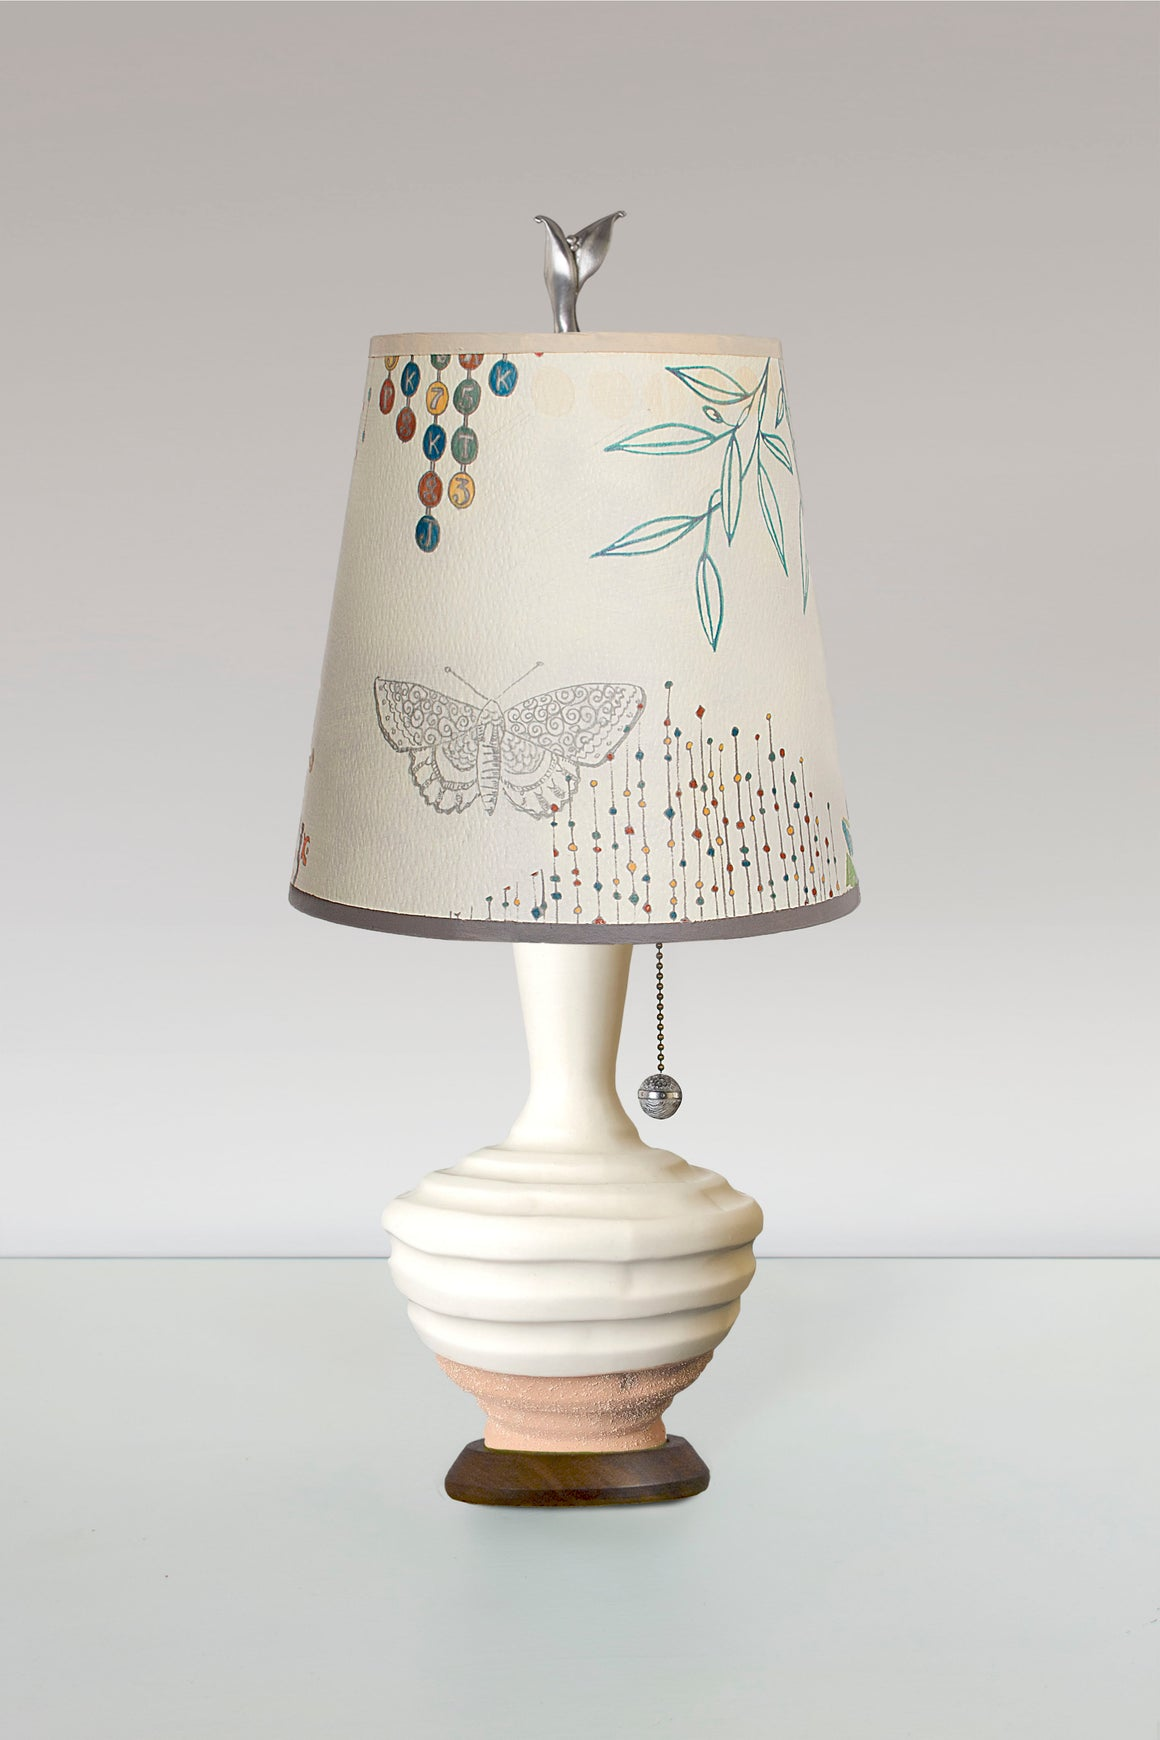 Terracotta and White Ceramic Table Lamp with Small Drum Shade in Ecru Journey